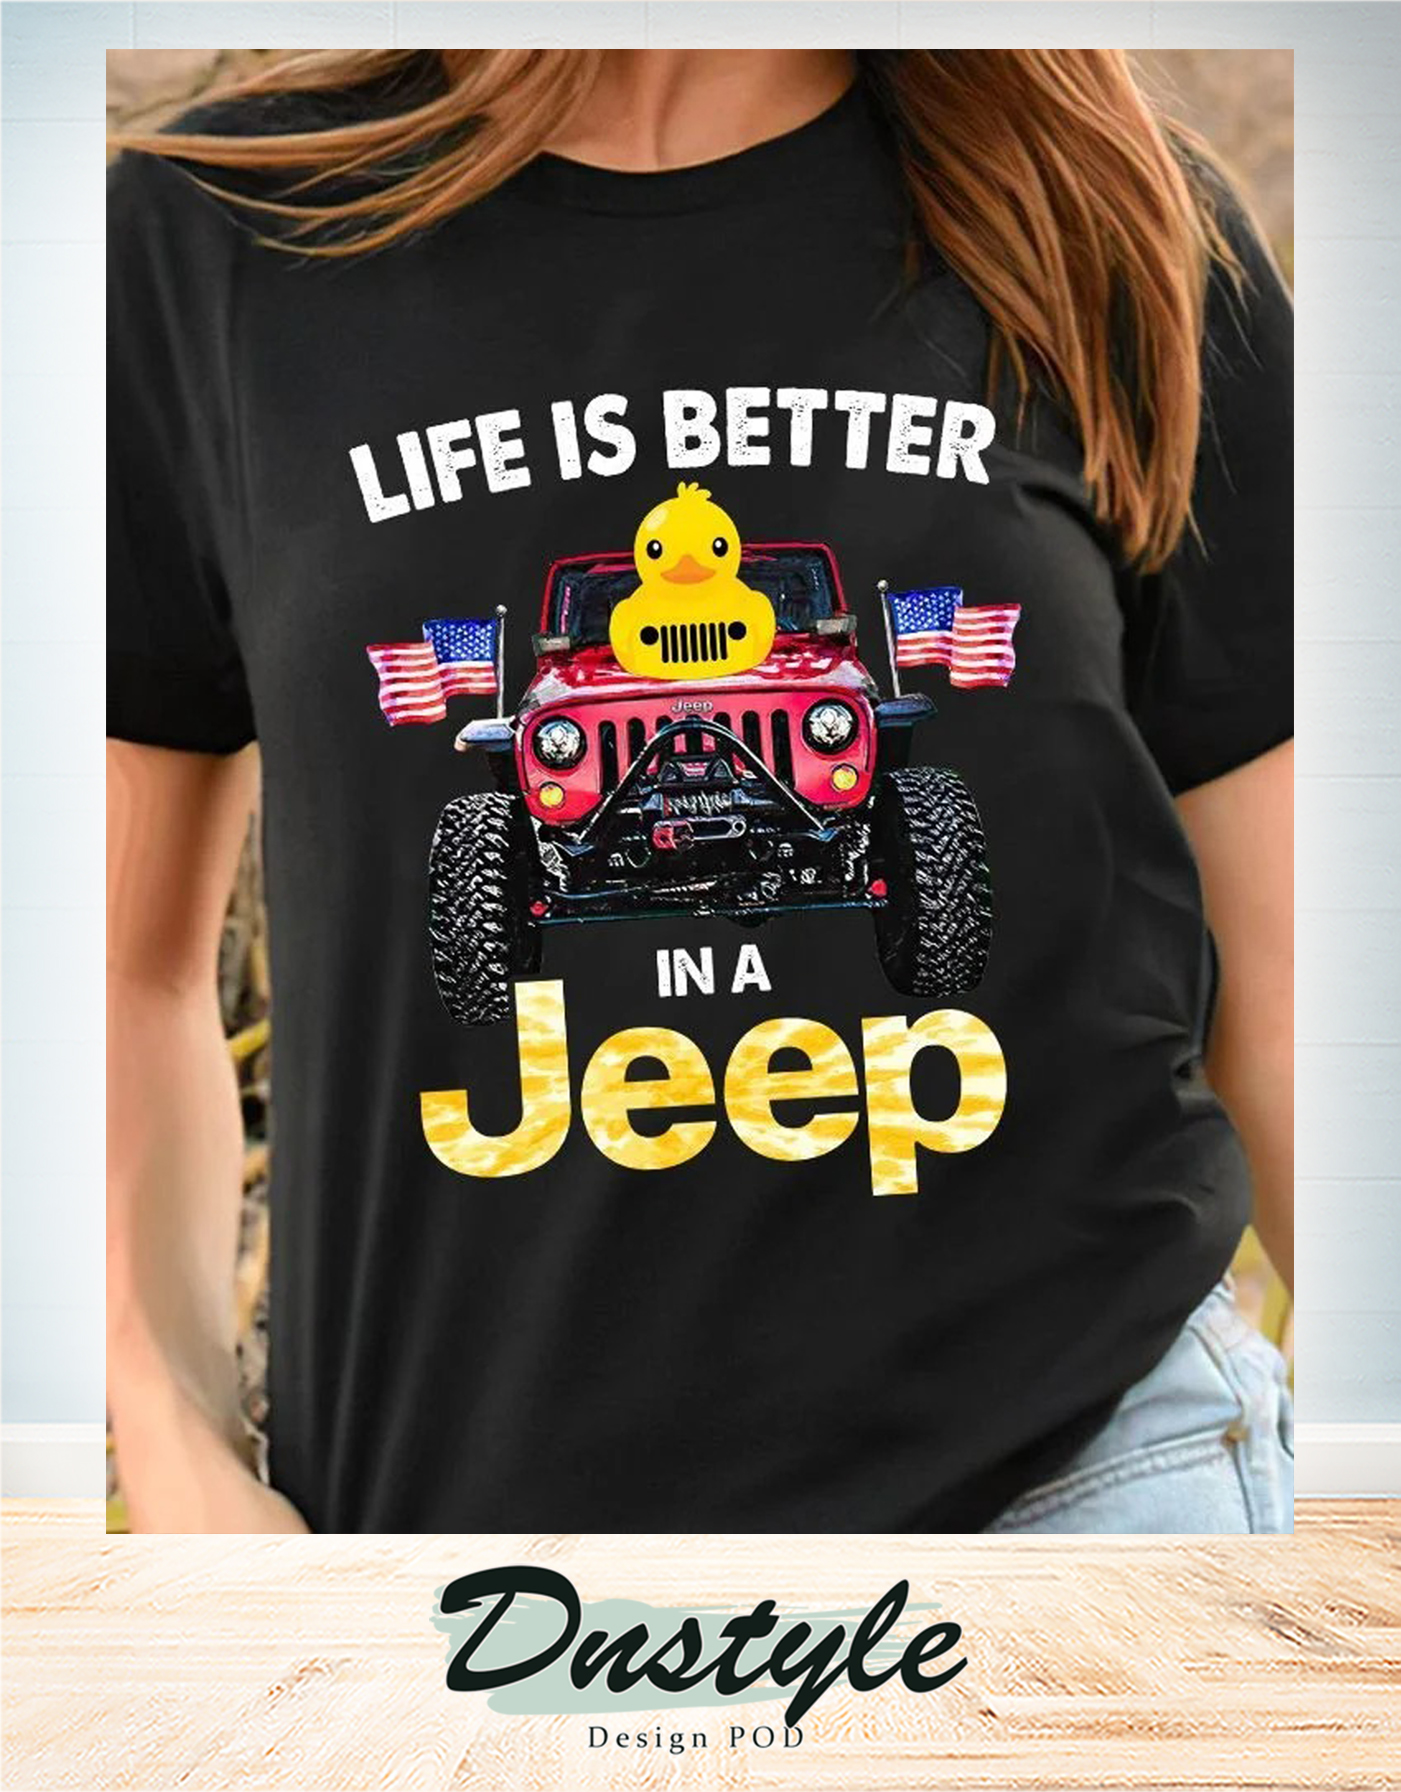 Duck duck life is better in a jeep american flag t-shirt